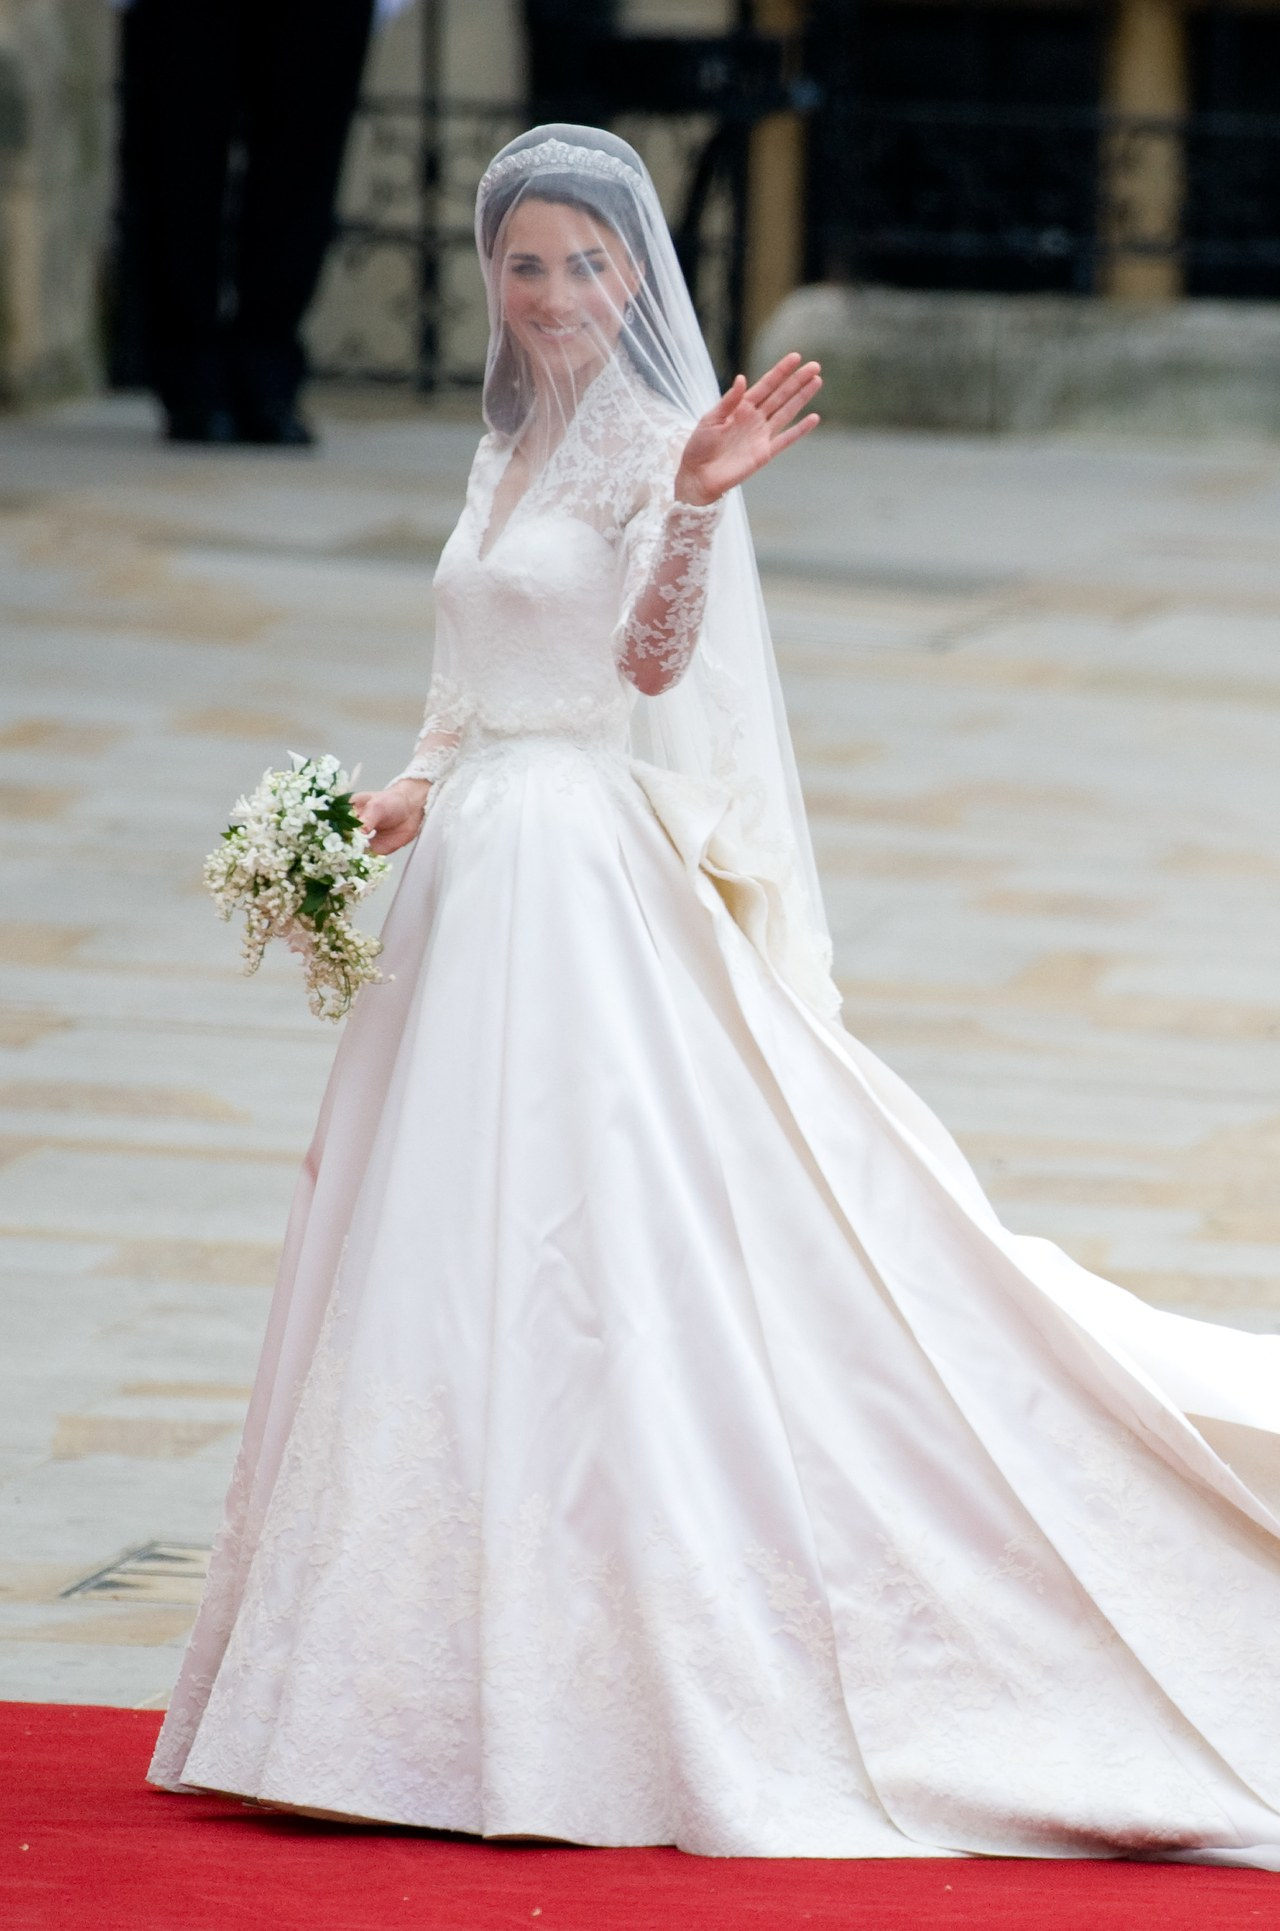 The Wedding of Prince William with Catherine Middleton - Westminster Abbey